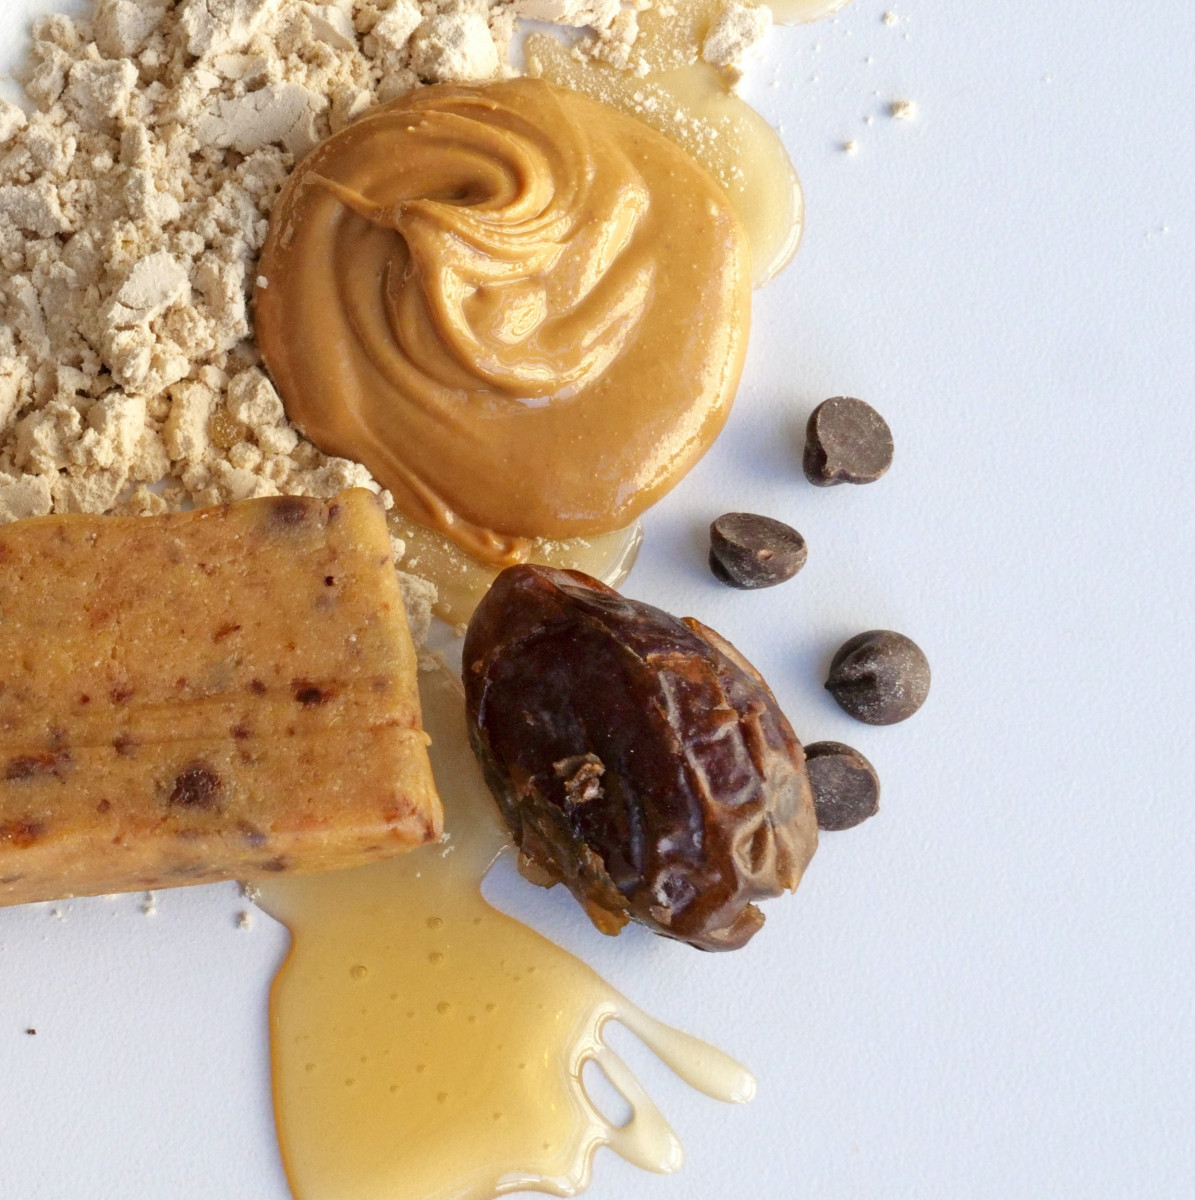 Cashew Butter Benefits | Good source of magnesium, iron, and healthy fats